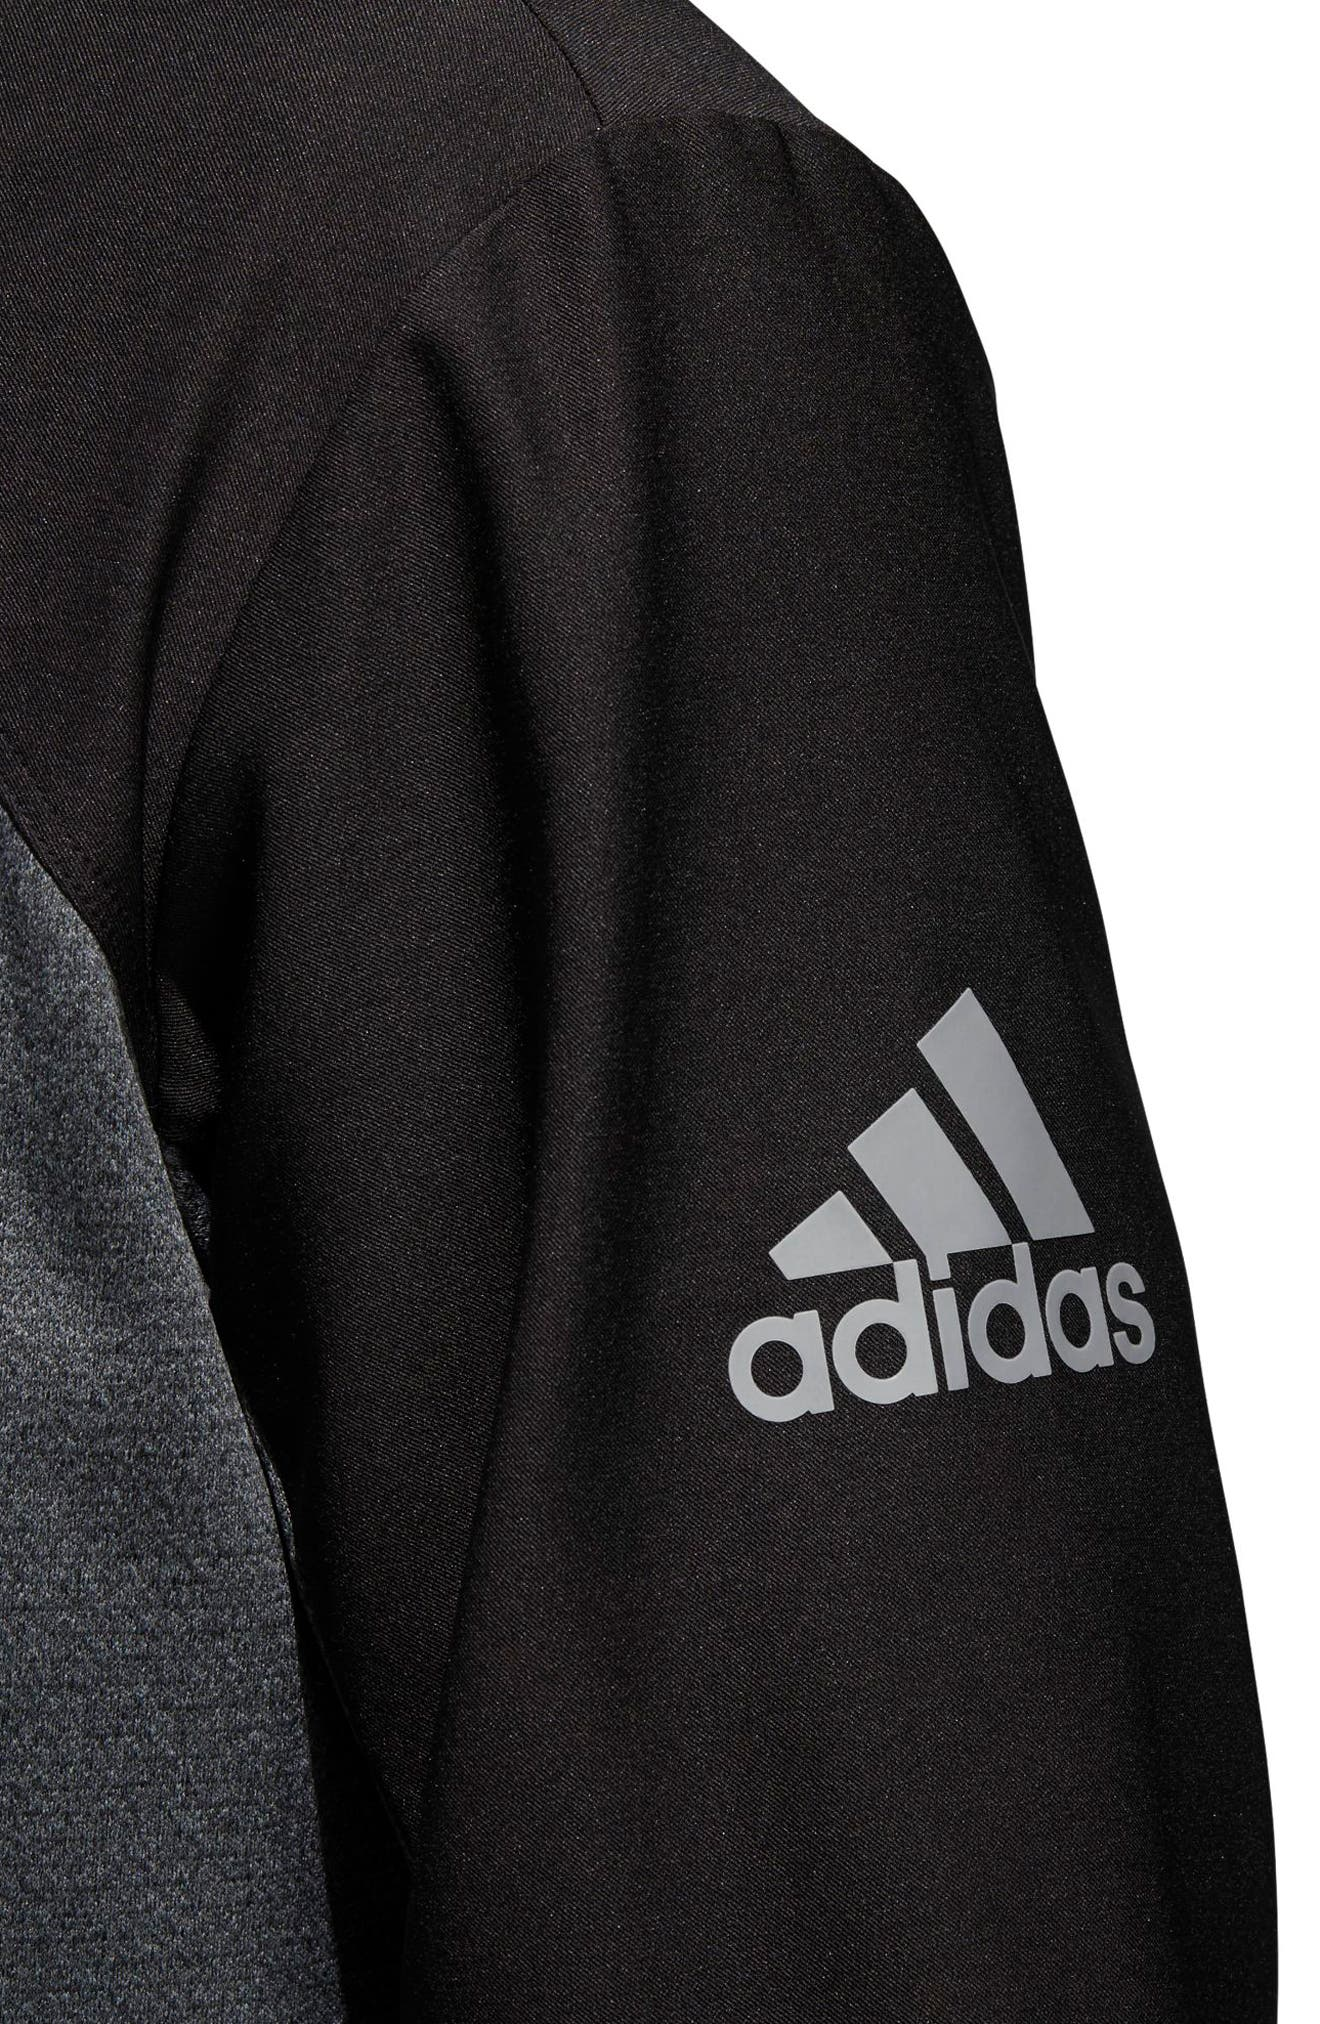 Go-To Adapt Pullover,                             Alternate thumbnail 6, color,                             020